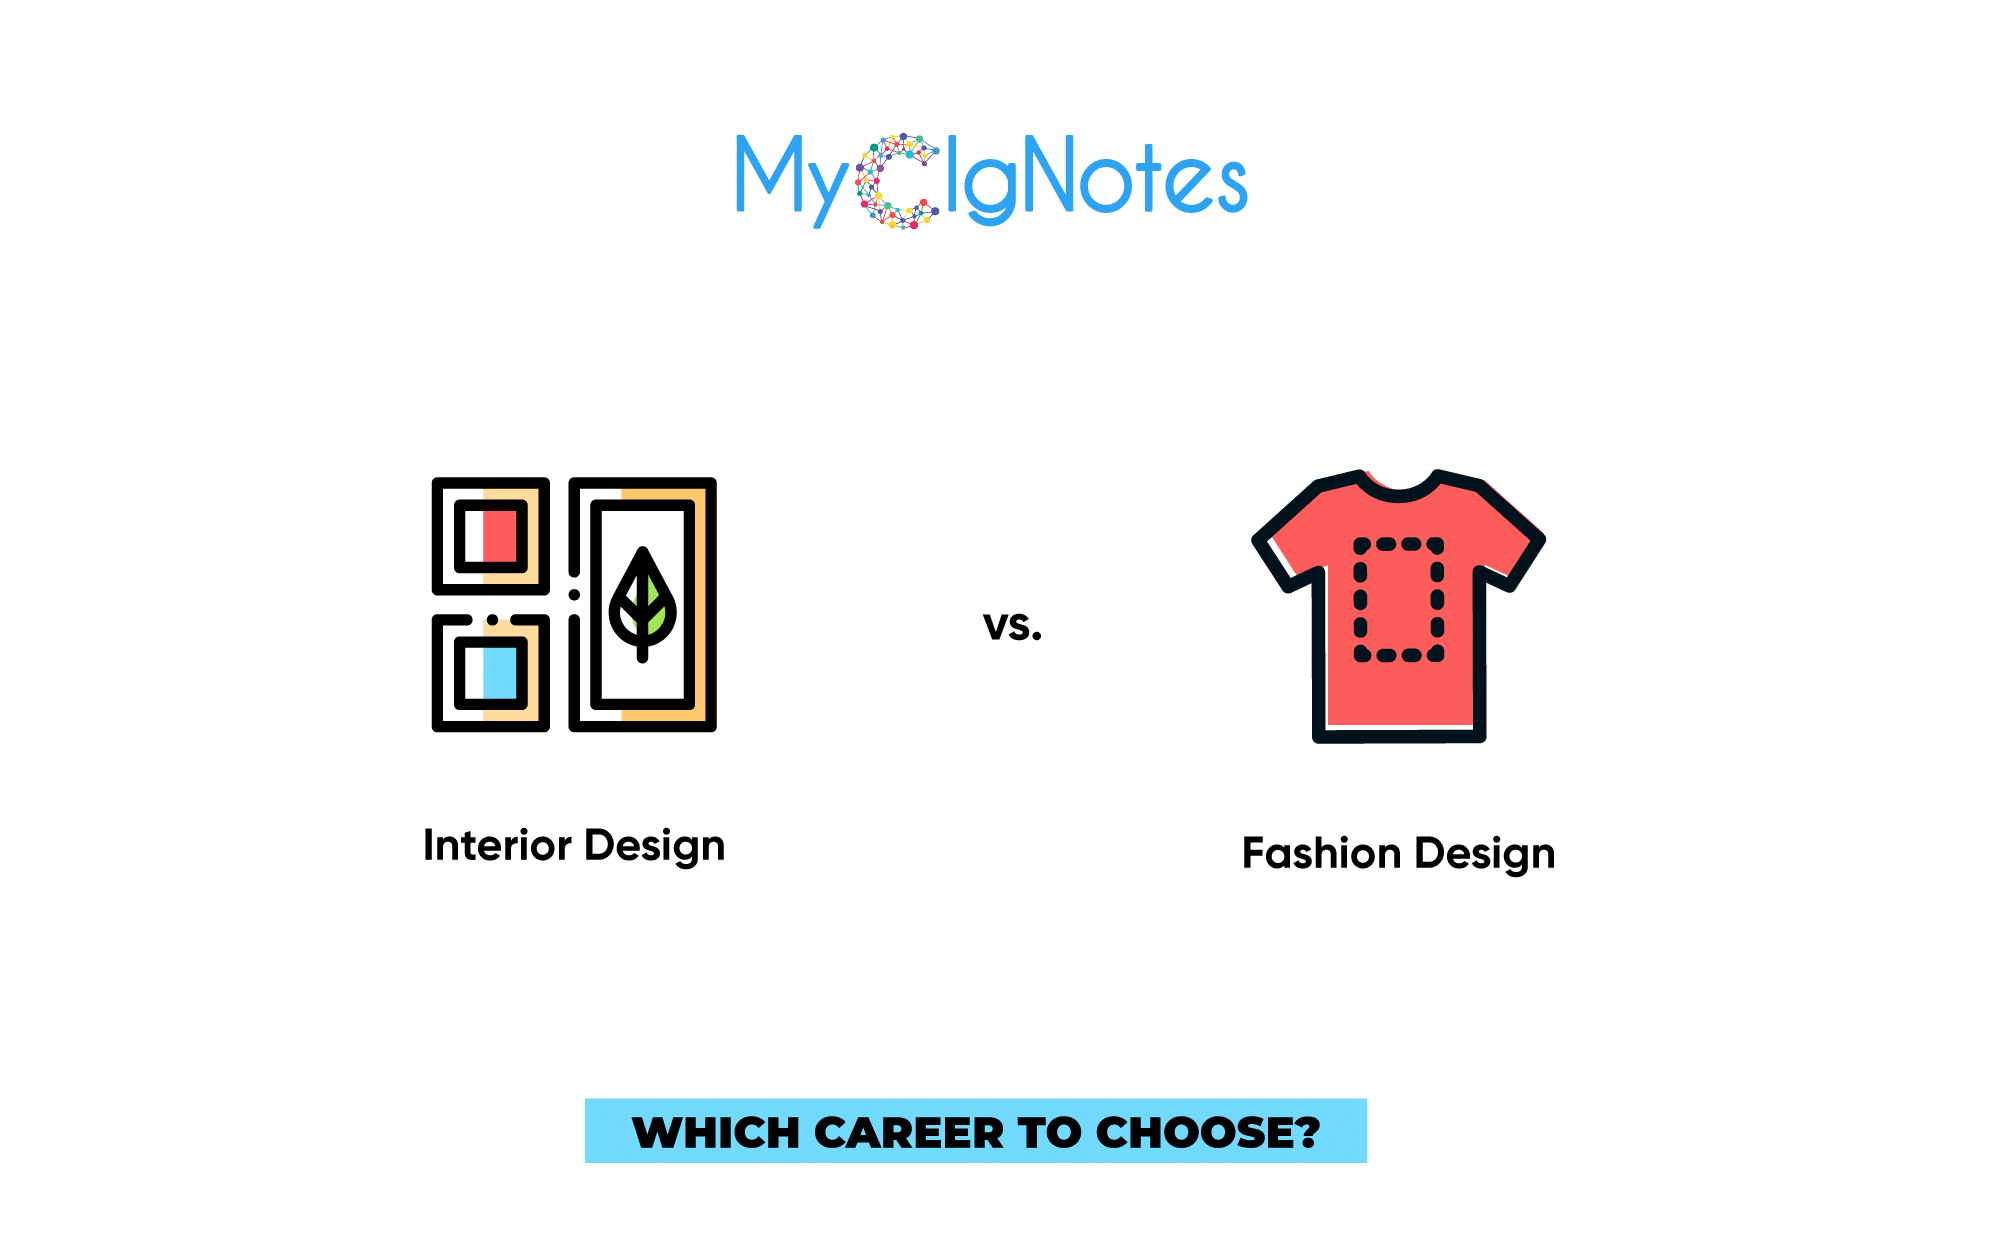 Comparison Between Interior And Fashion Design As A Careers Option Myclgnotes